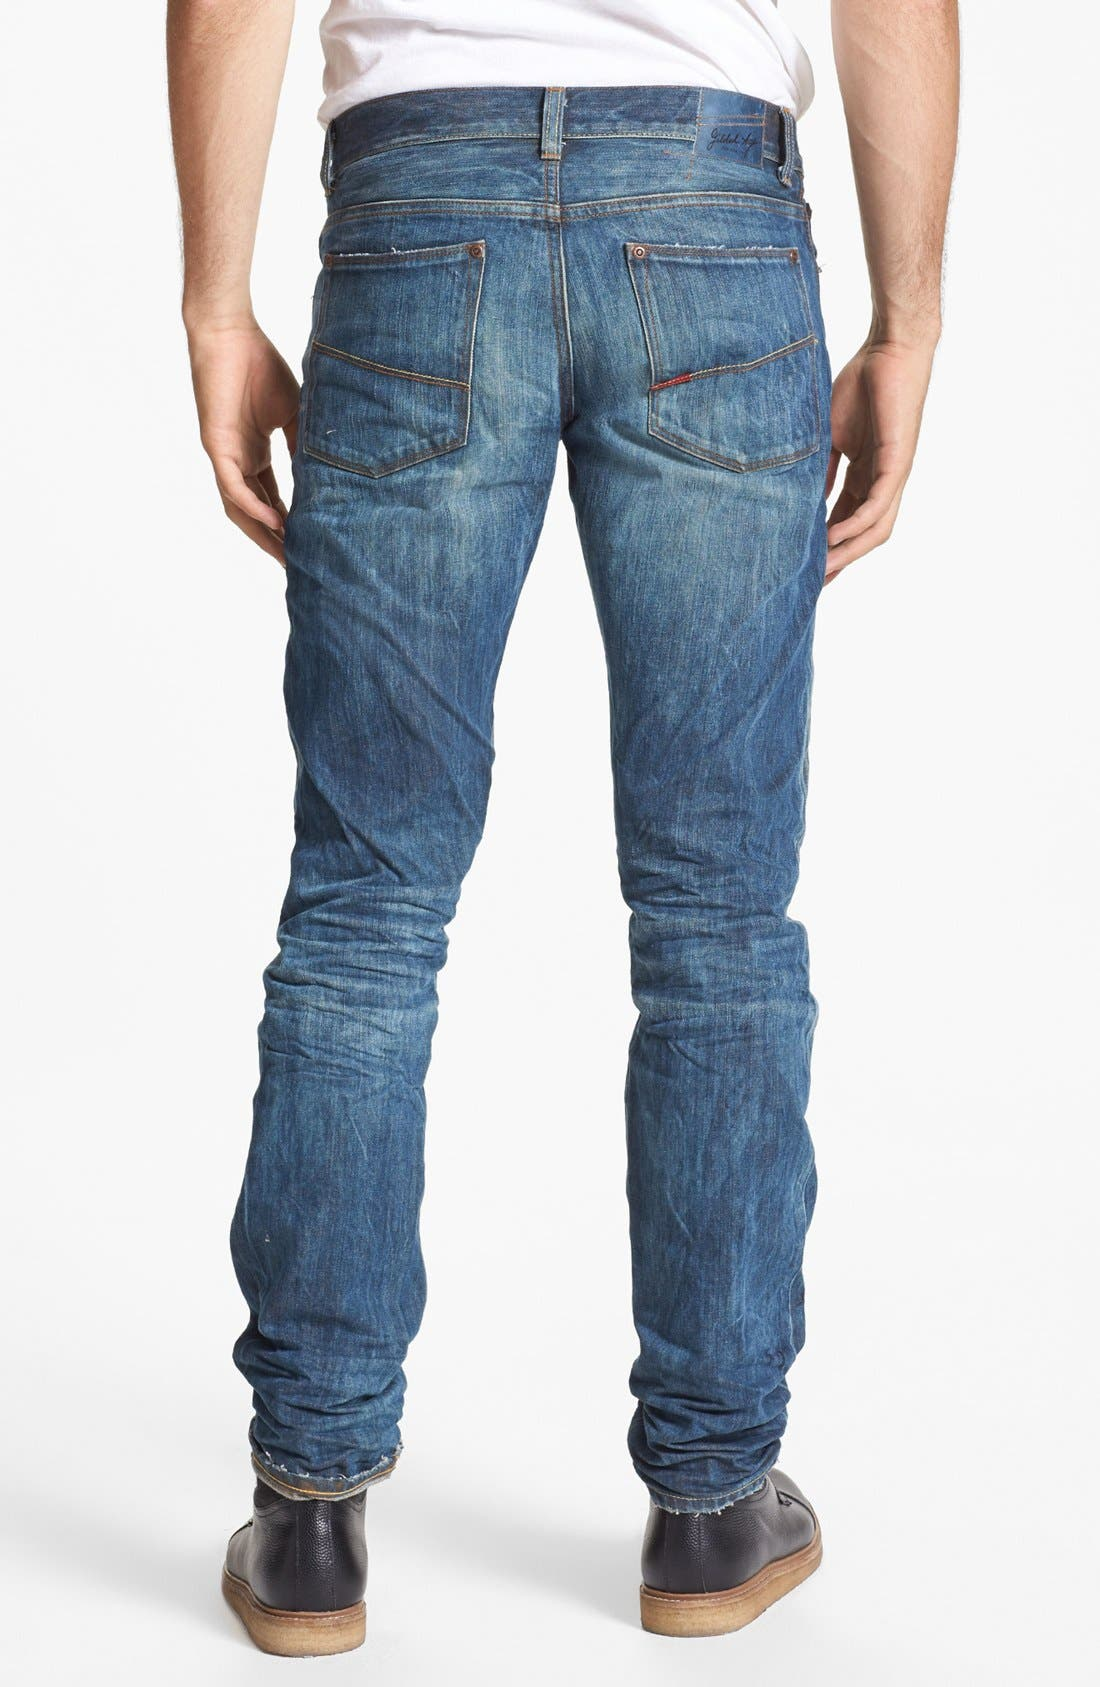 Alternate Image 1 Selected - Gilded Age 'Baxten' Slim Fit Jeans (Blue Rust)